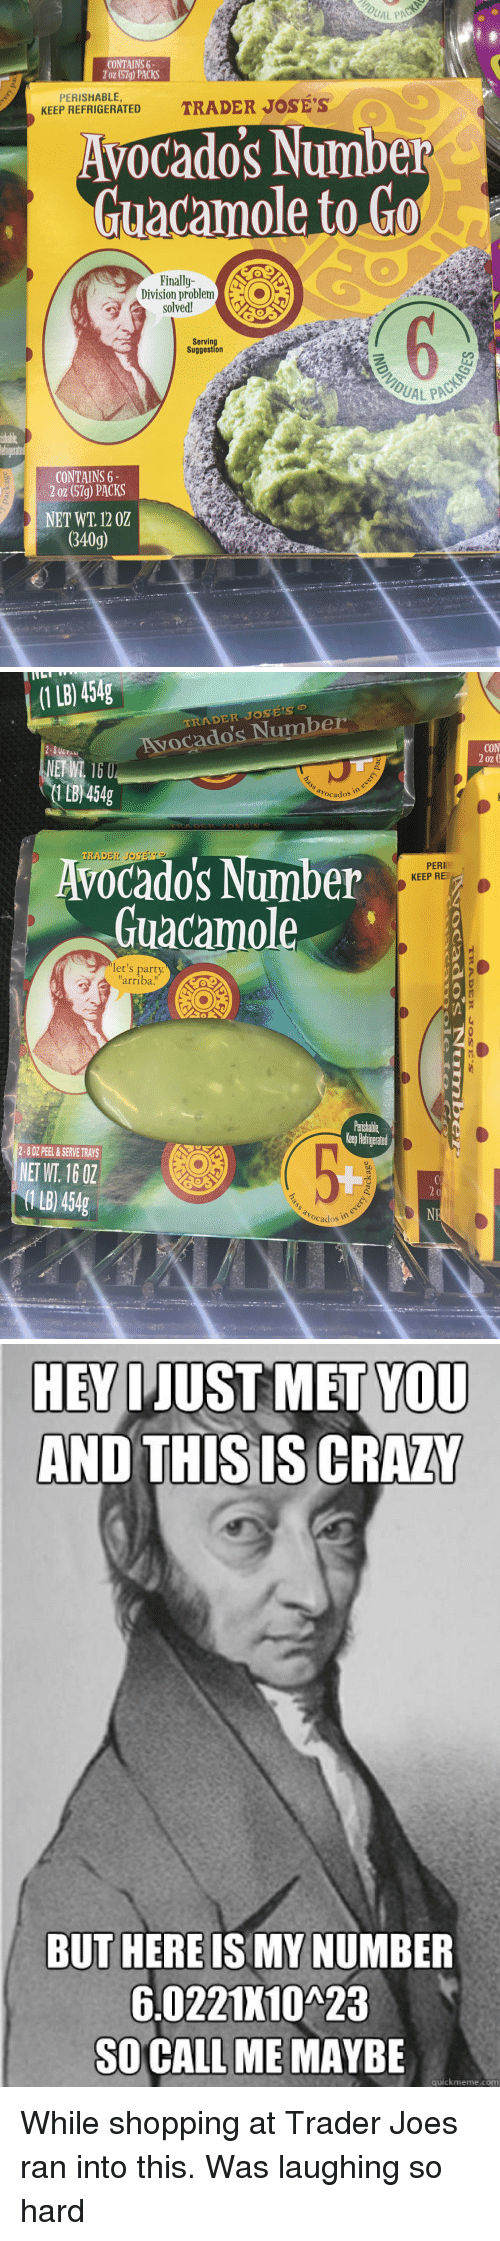 "Call Me Maybe, Guacamole, and Party: CONTAINS 6  2 oz (57g) PACKS  PERISHABLE,  KEEP REFRIGERATED  Avocado's Number  Guacamole to Go  Finally  solved!  Serving  Suggestion  UAL PAC  ishable  CONTAINS 6  2 oz (57g) PACKS  NET WT. 12 02  340g)   (1 LB) 454g  To  RADER JOSES  Avocado's Number  CON  0Z  1LB 454g  avocados  Avocado's Number  Guacamole  TRADER JOSE'S  PERI  KEEP RE  let's party  arriba!""  Paishable  erp Retigeated  2-8 OZ PEEL &SERVE TRAYS  NET WT. 16 0Z  1 B) 454g  b0  Ocados   HEV IJUST MET YOU  AND THIS IS CRAZ  BUT HERE IS MY NUMBER  6.0221K10A23  SO CALL ME MAYBE  quickmeme.com While shopping at Trader Joes ran into this. Was laughing so hard"